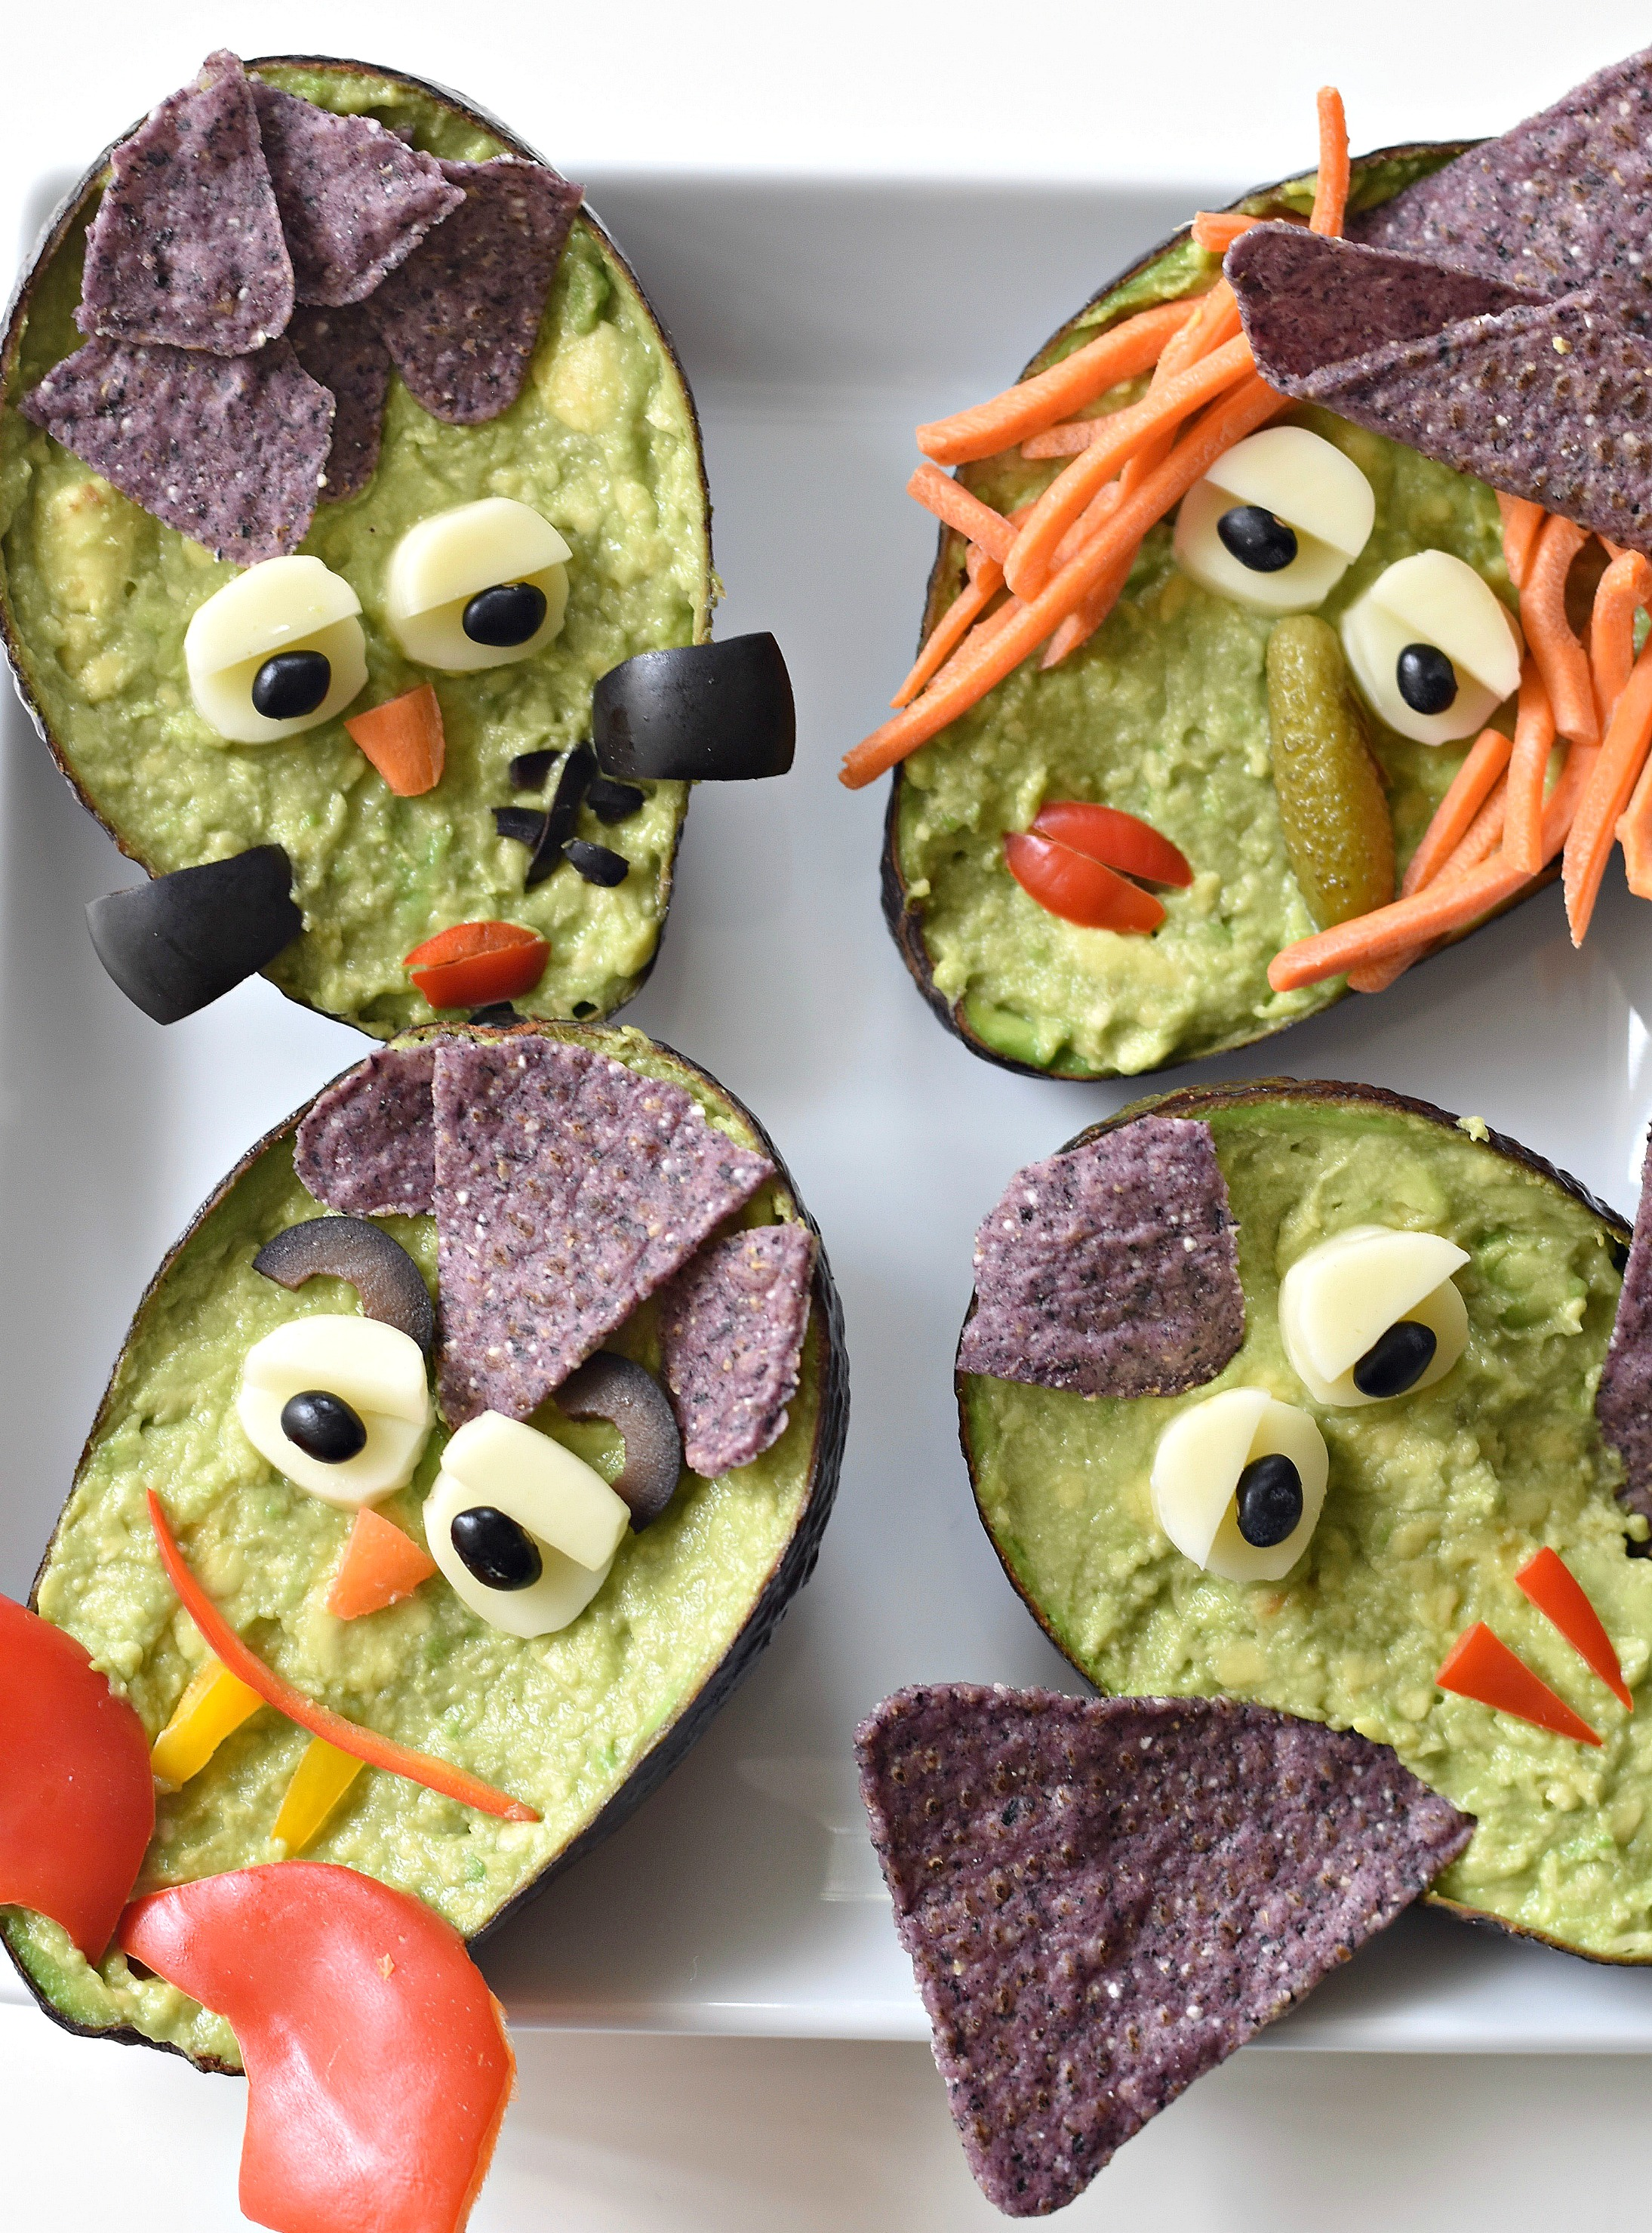 Just scoop out the flesh of the avocado, turn into guacamole, place back into the avocado shell, and make one (or all) of your favorite Halloween GuacaMonsters.